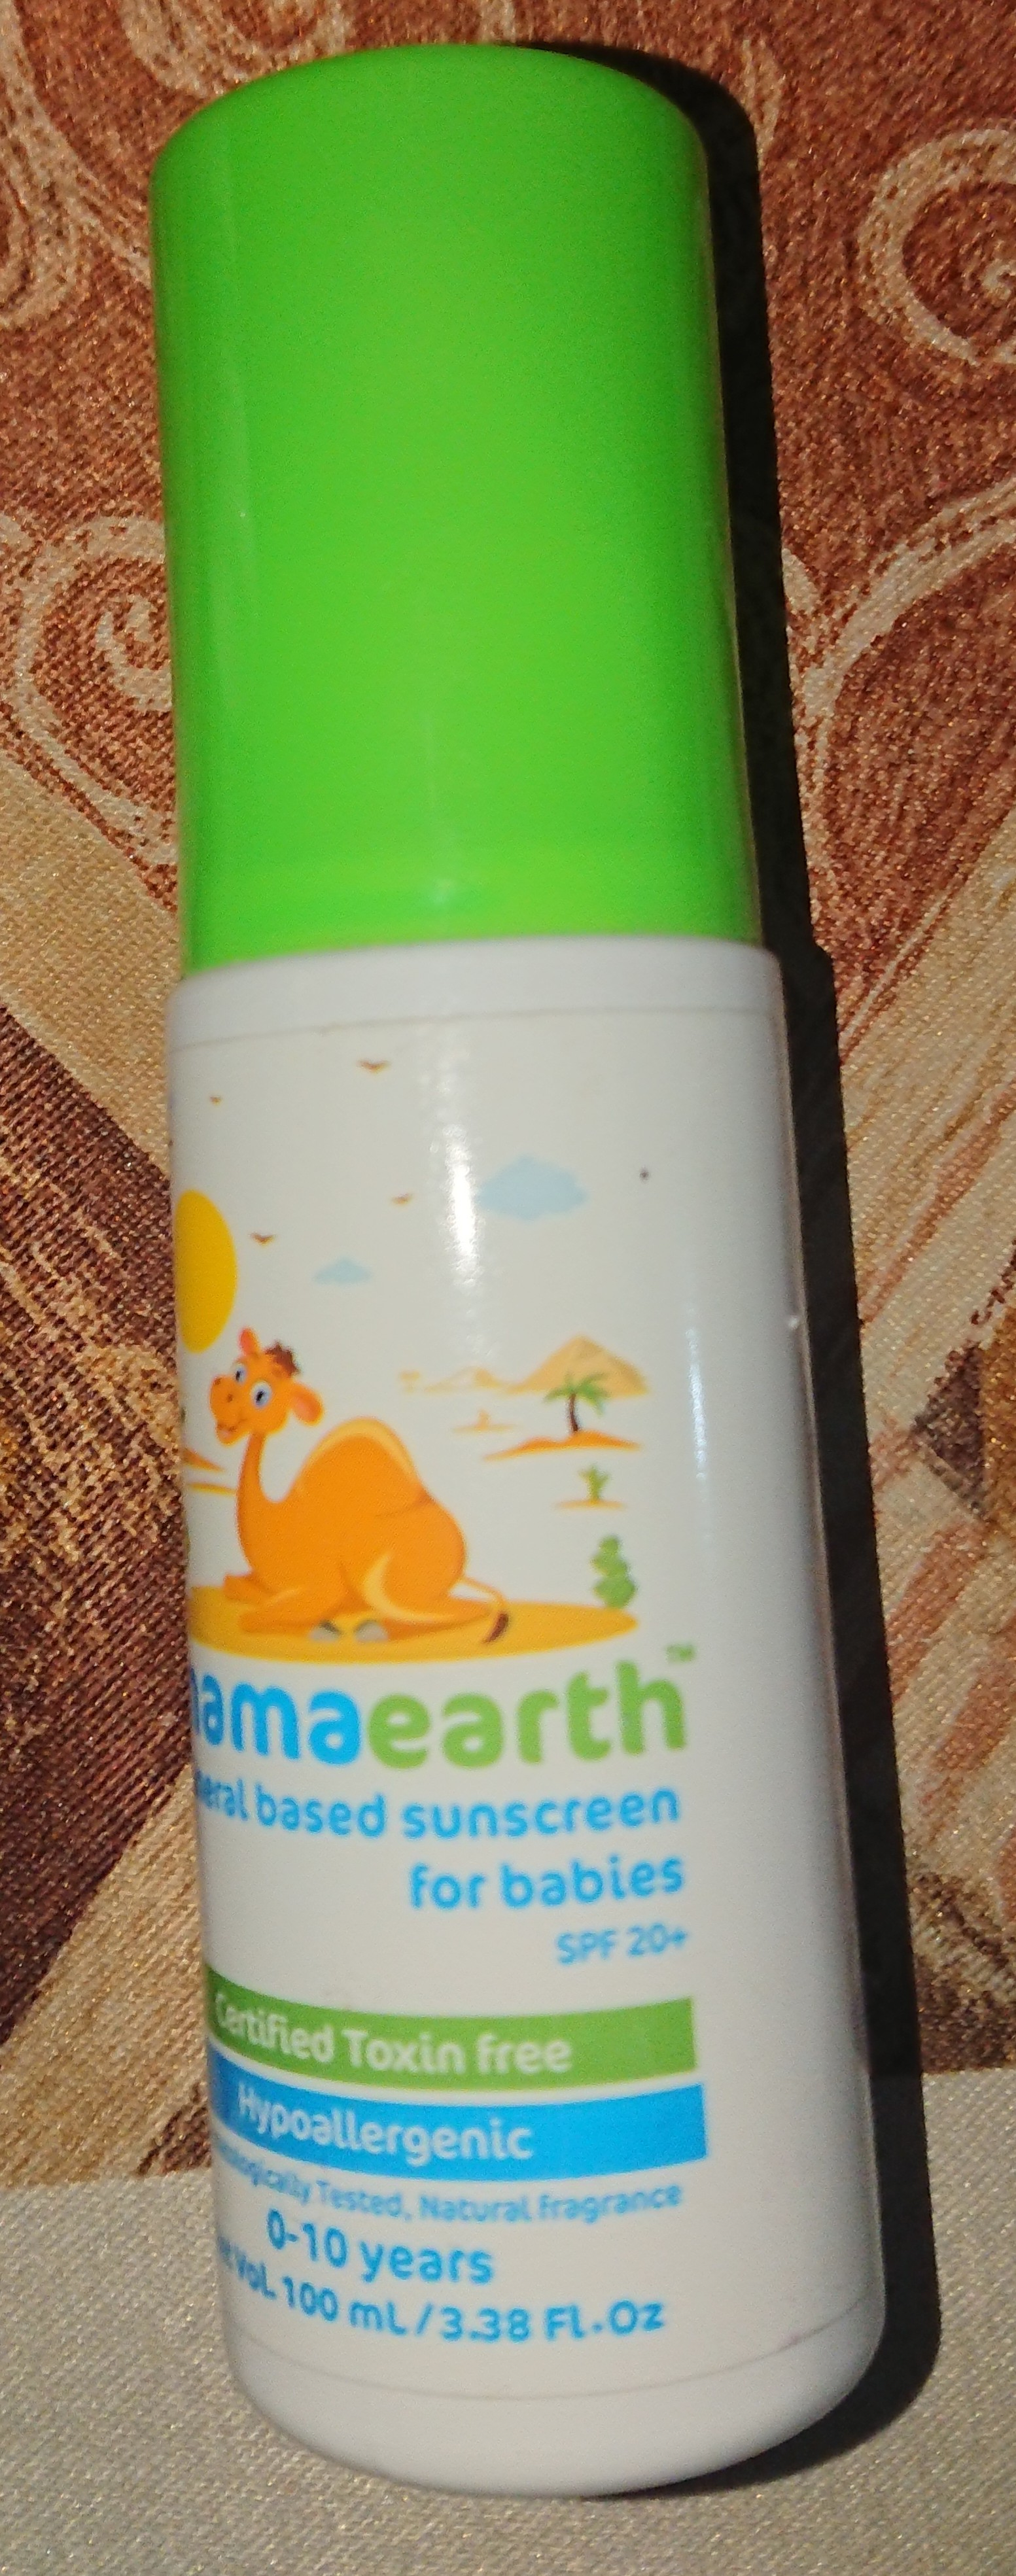 Mamaearth Mineral Based Sunscreen for Babies-Mamaearth Mineral Based Sunscreen for Babies-By vatty2003